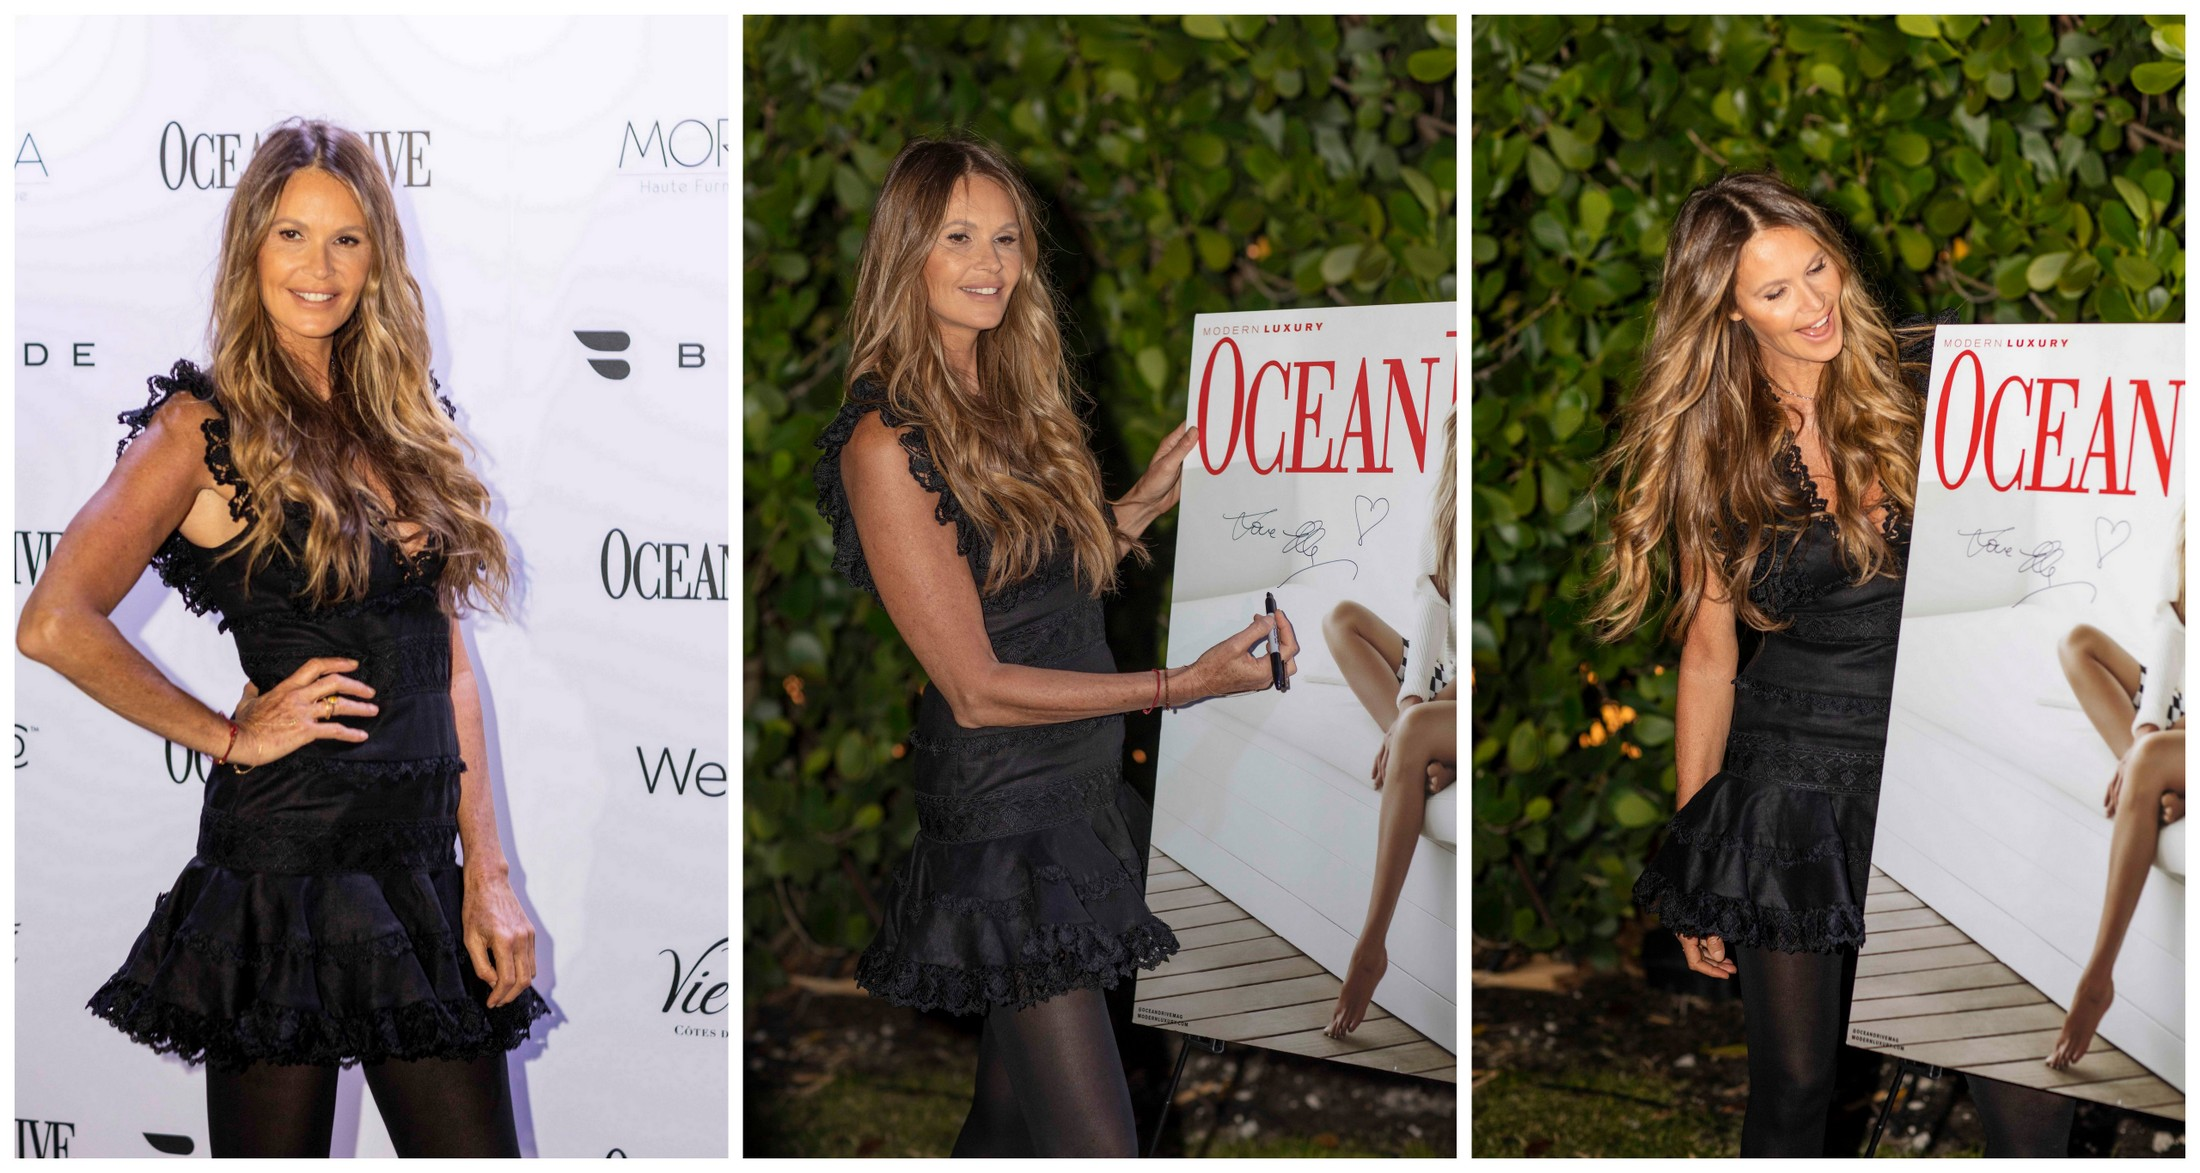 Ocean Drive Magazine celebrates its first issue of 2019 with a VIP event hosted by its cover star Elle Macpherson